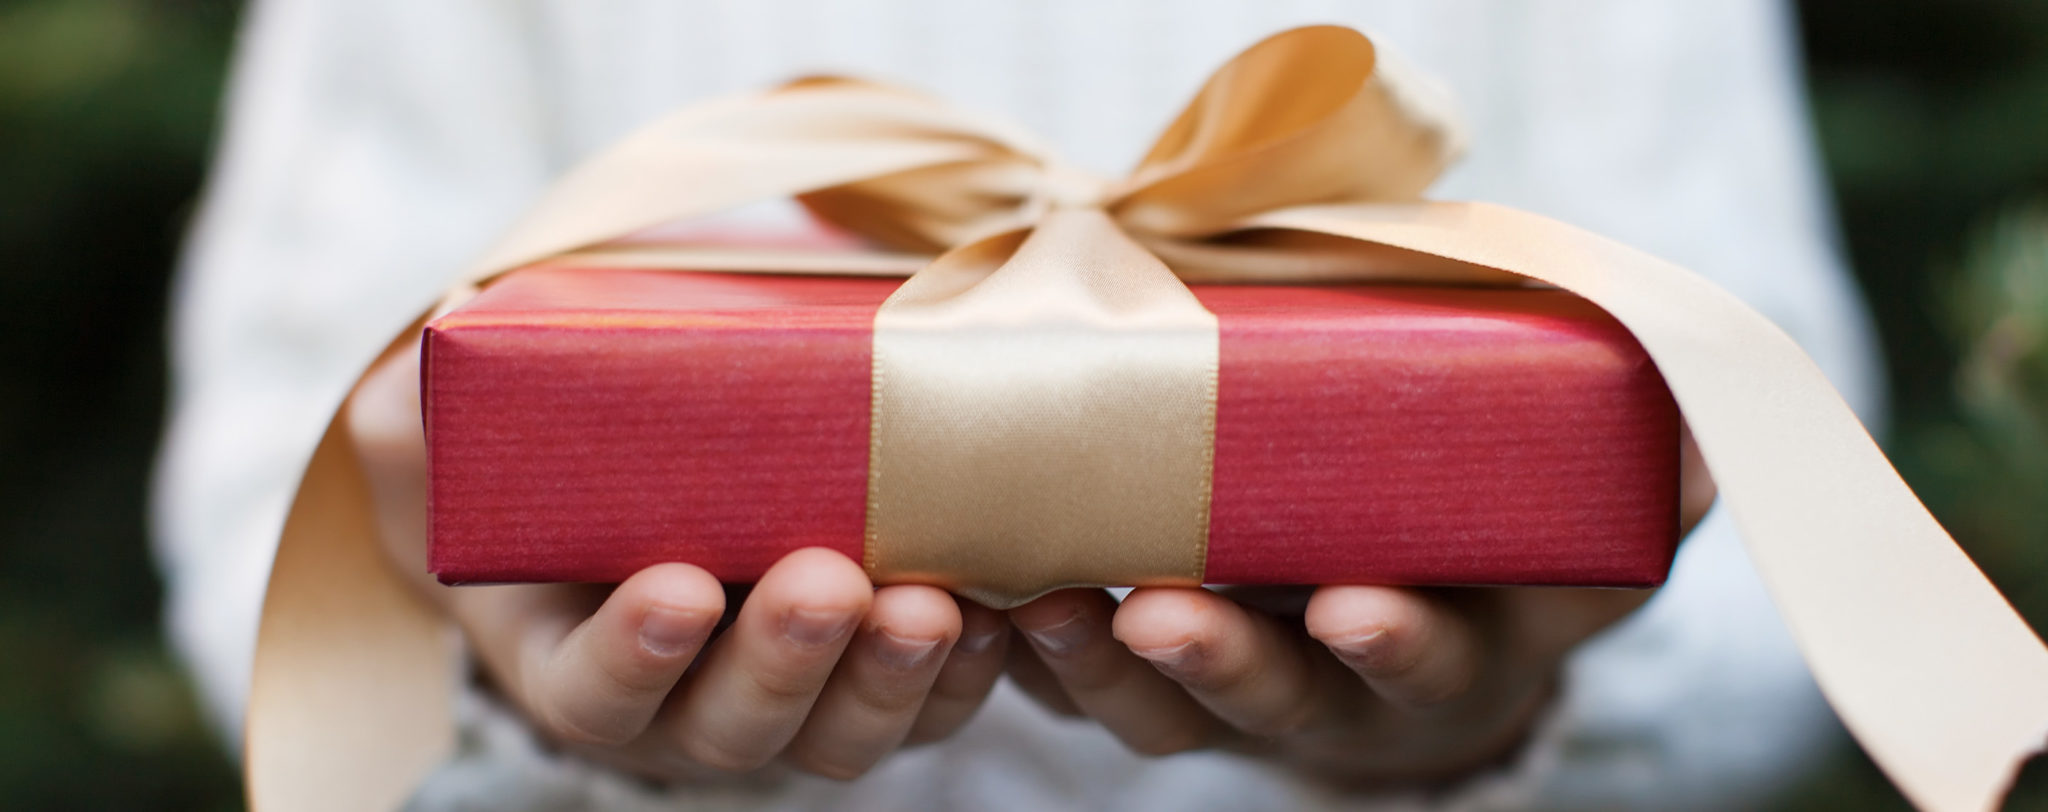 Top 7 Gifts for Healthy Holiday Giving